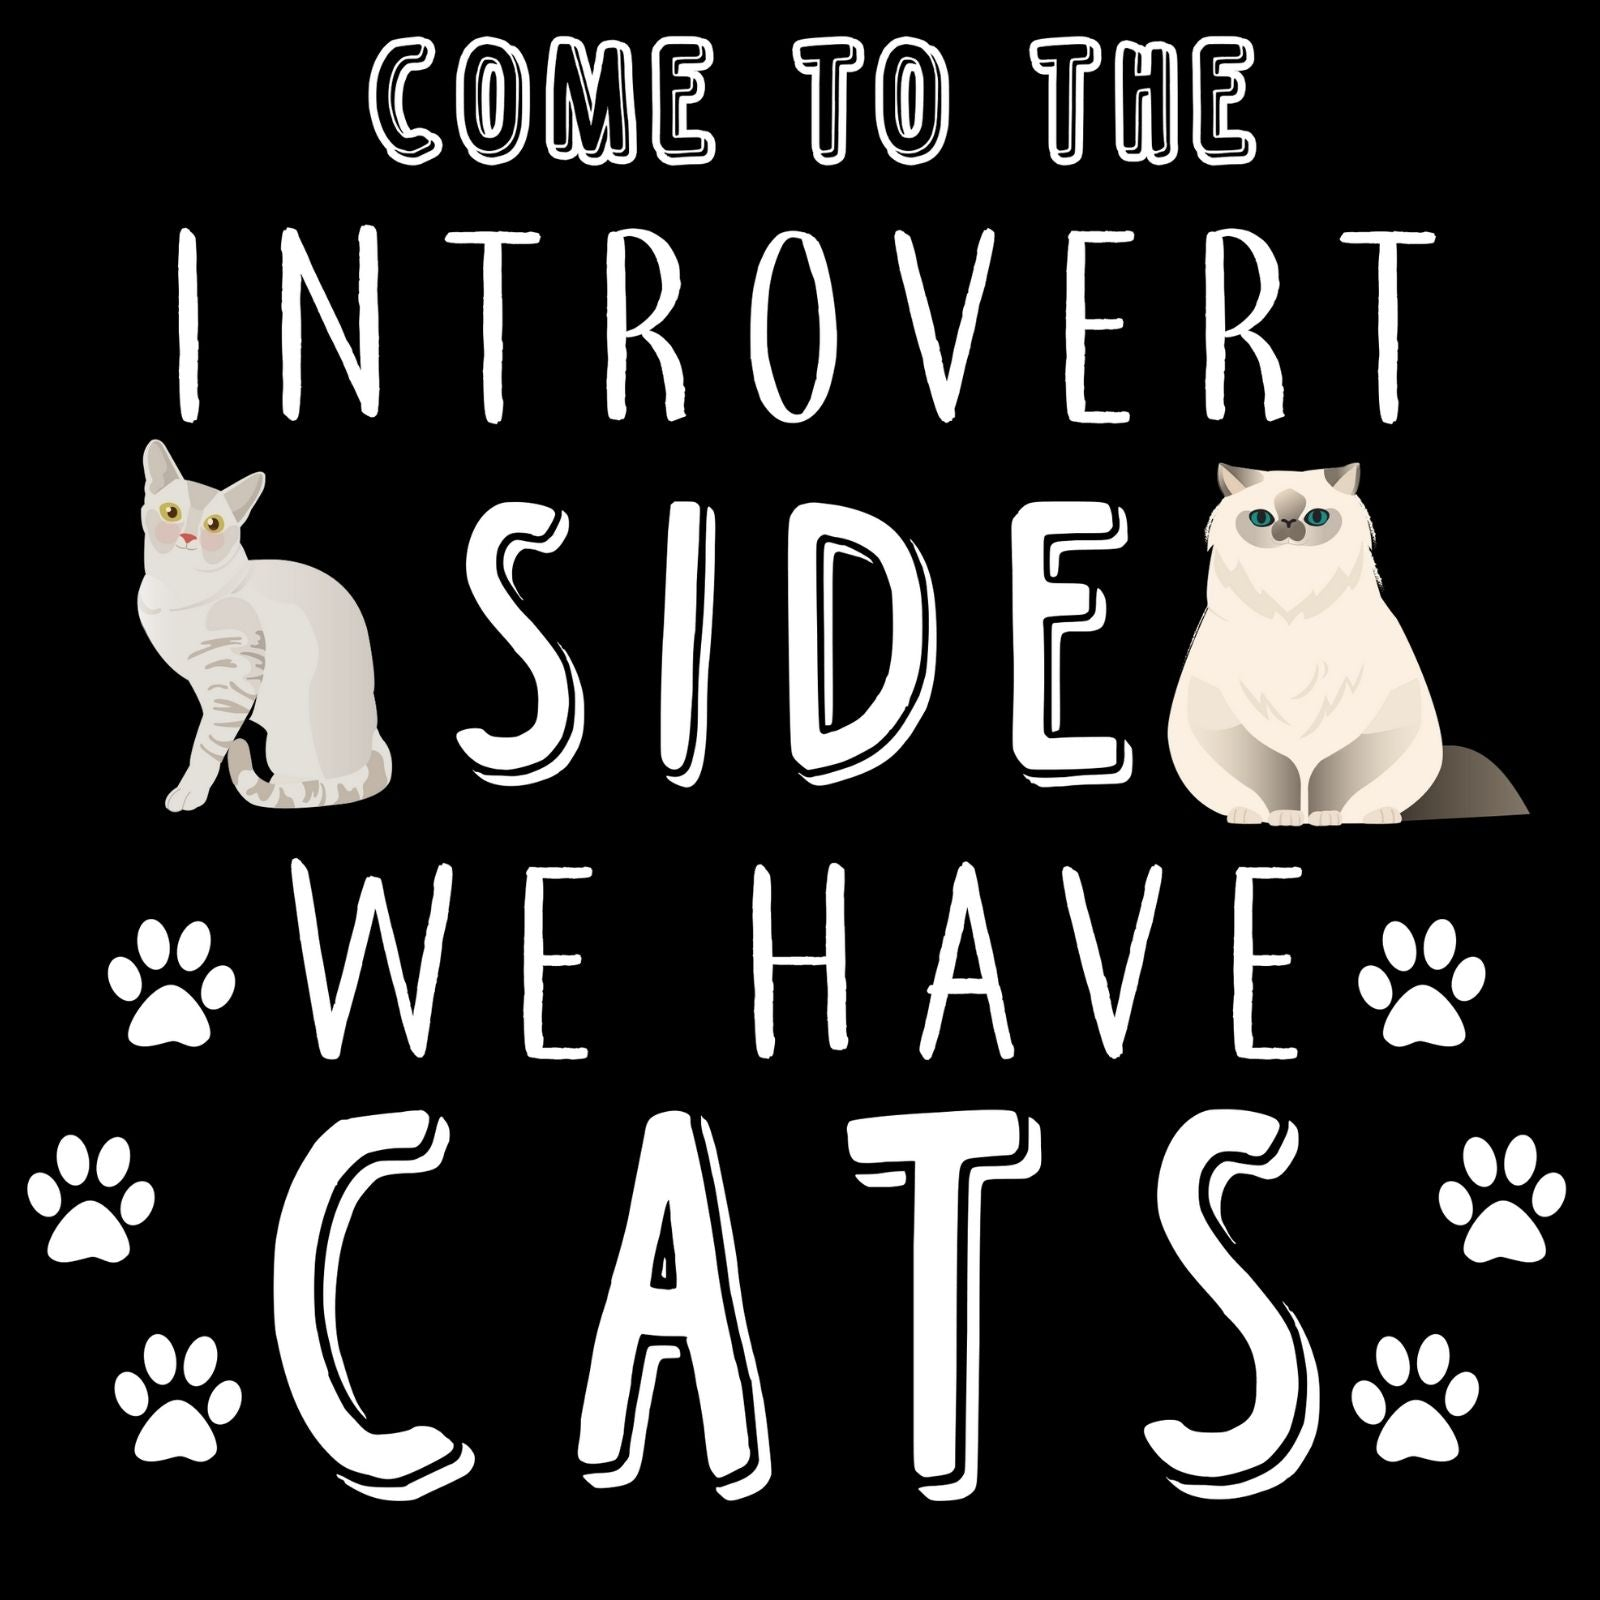 Come To The Introvert Side We Have Cats - Bastard Graphics